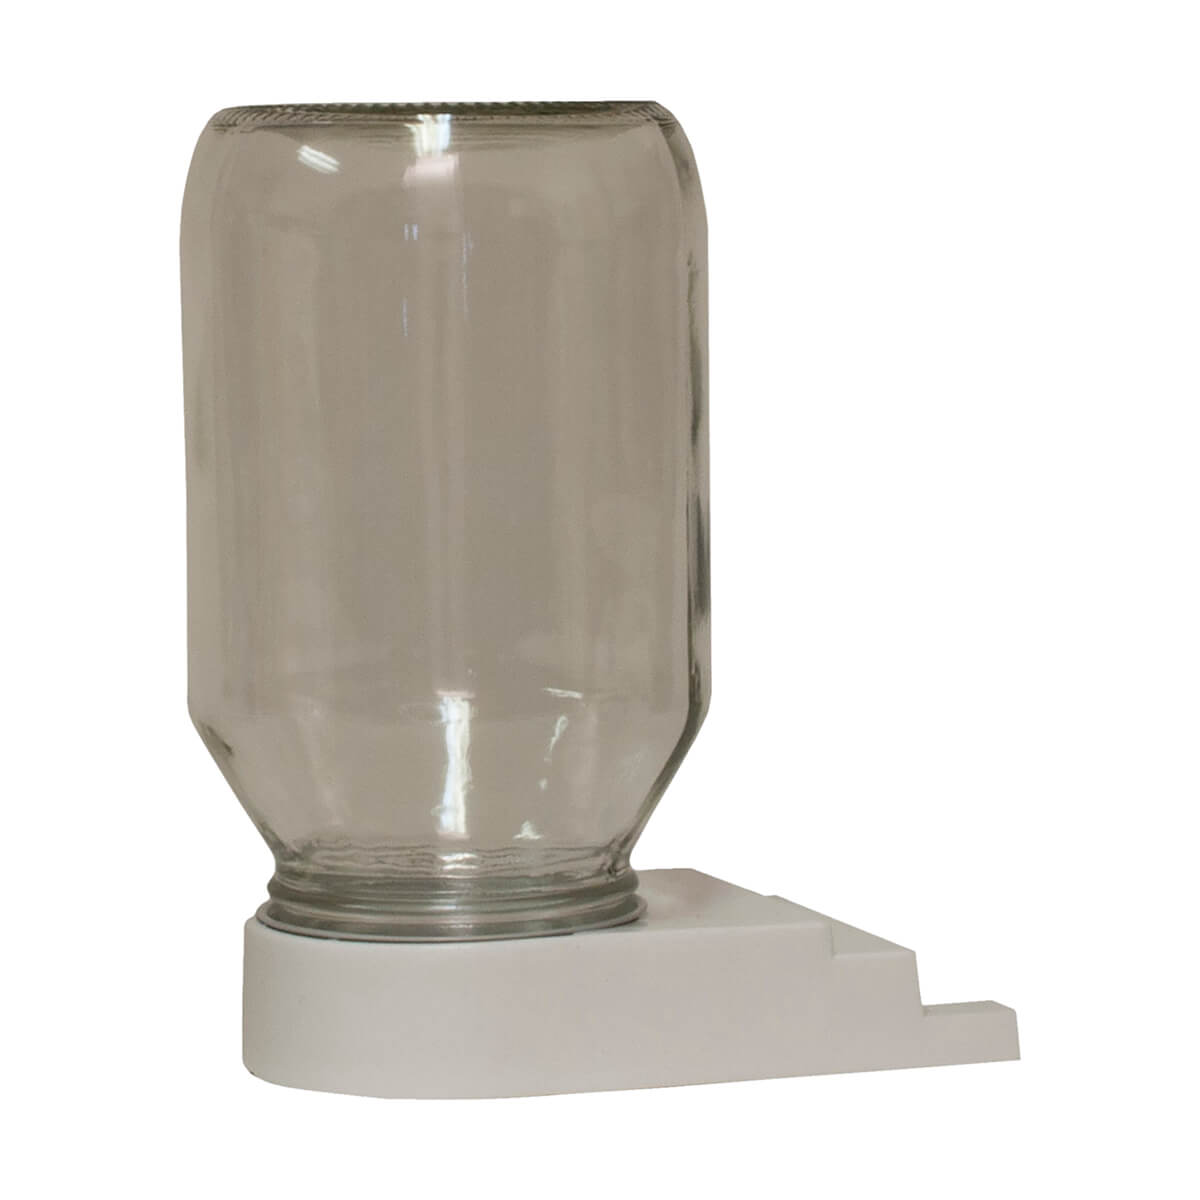 Harvest Lane Honey FEEDBBG-102 Honey Bee Entrance Feeder with Jar - 1qt